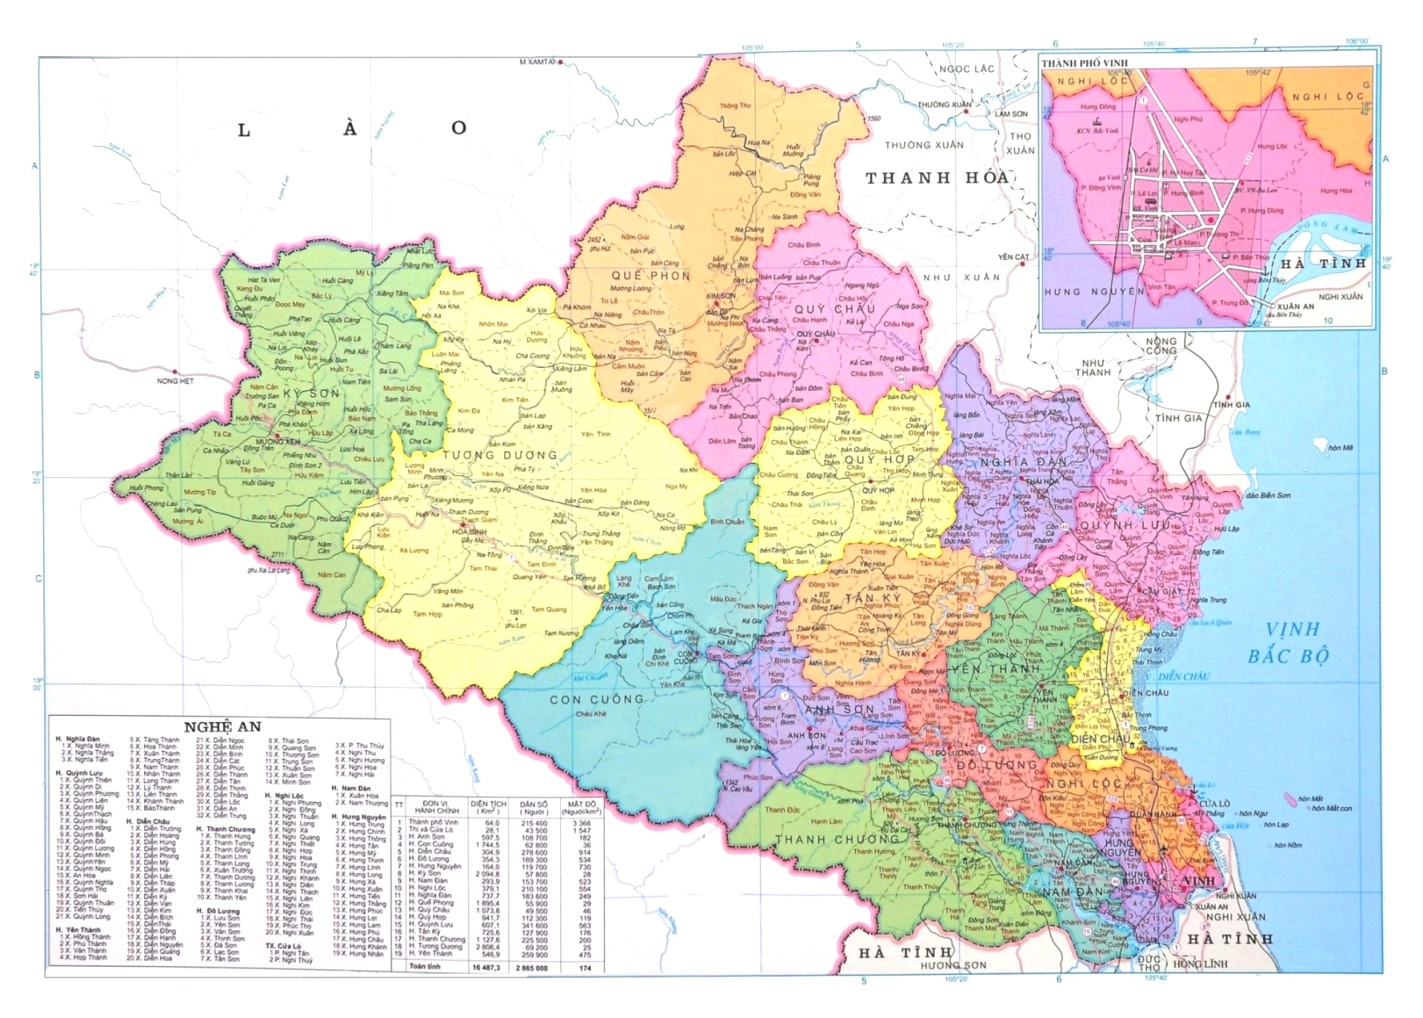 Home > VN Map > Nghe An Province